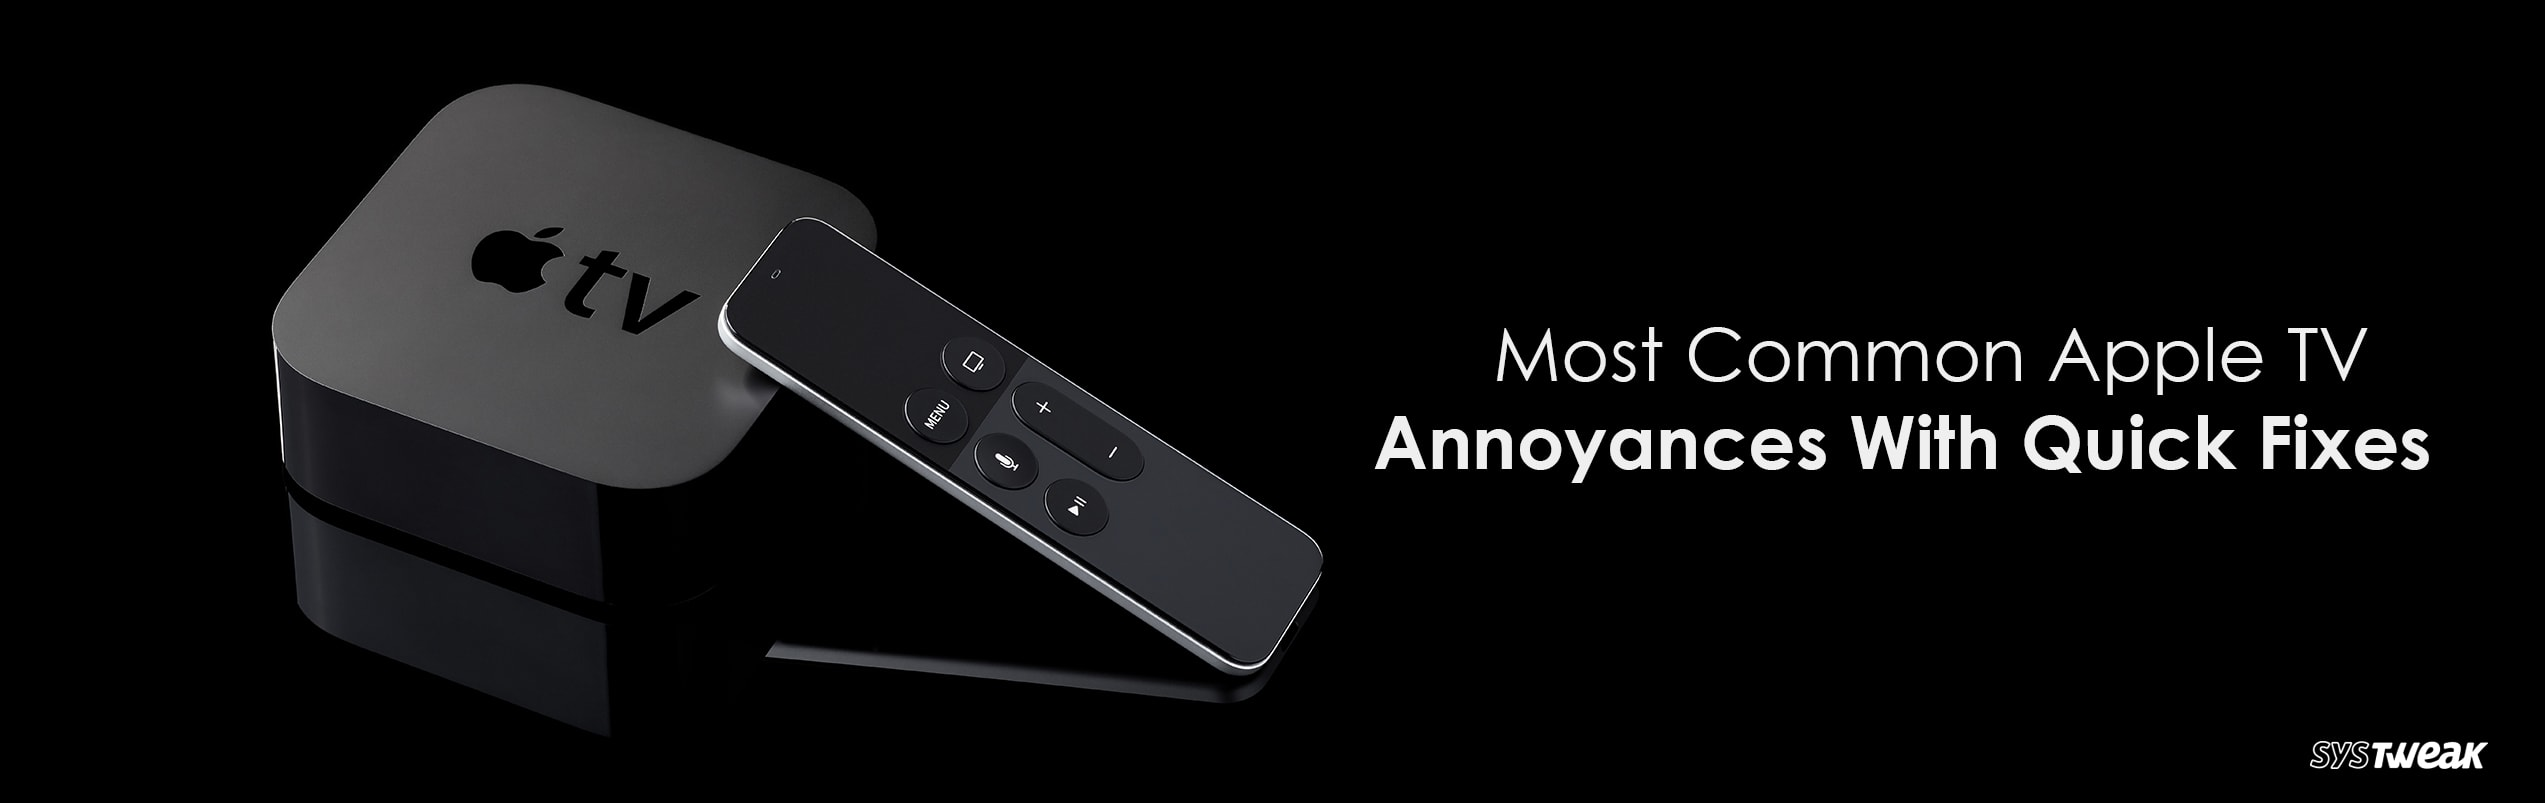 6 Most Common Apple TV Problems Along with their Quick Fixes